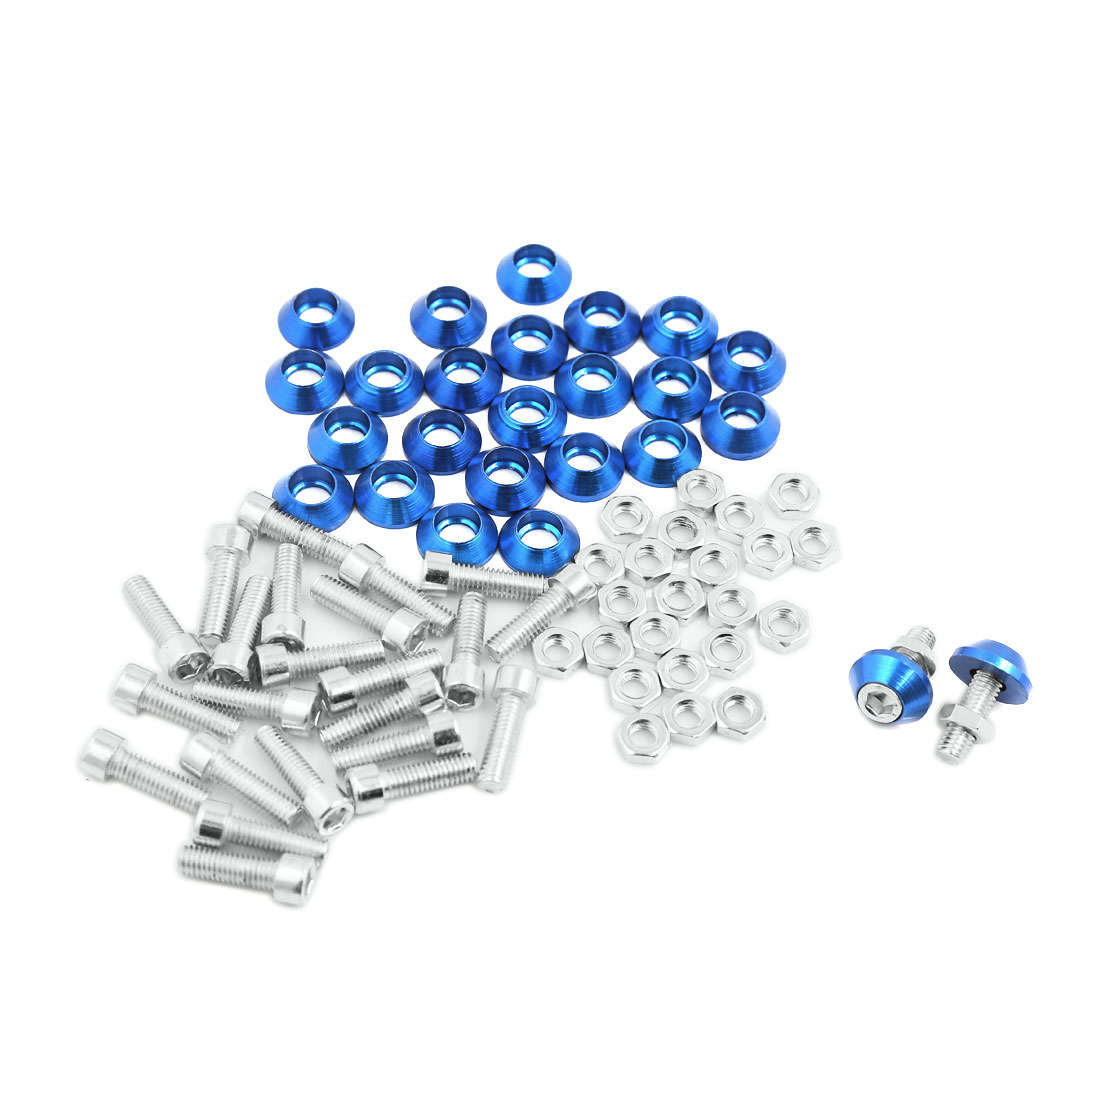 6mm Thread Dia Cone Head Motorcycle Truck License Plate Frame Screws Blue 25pcs